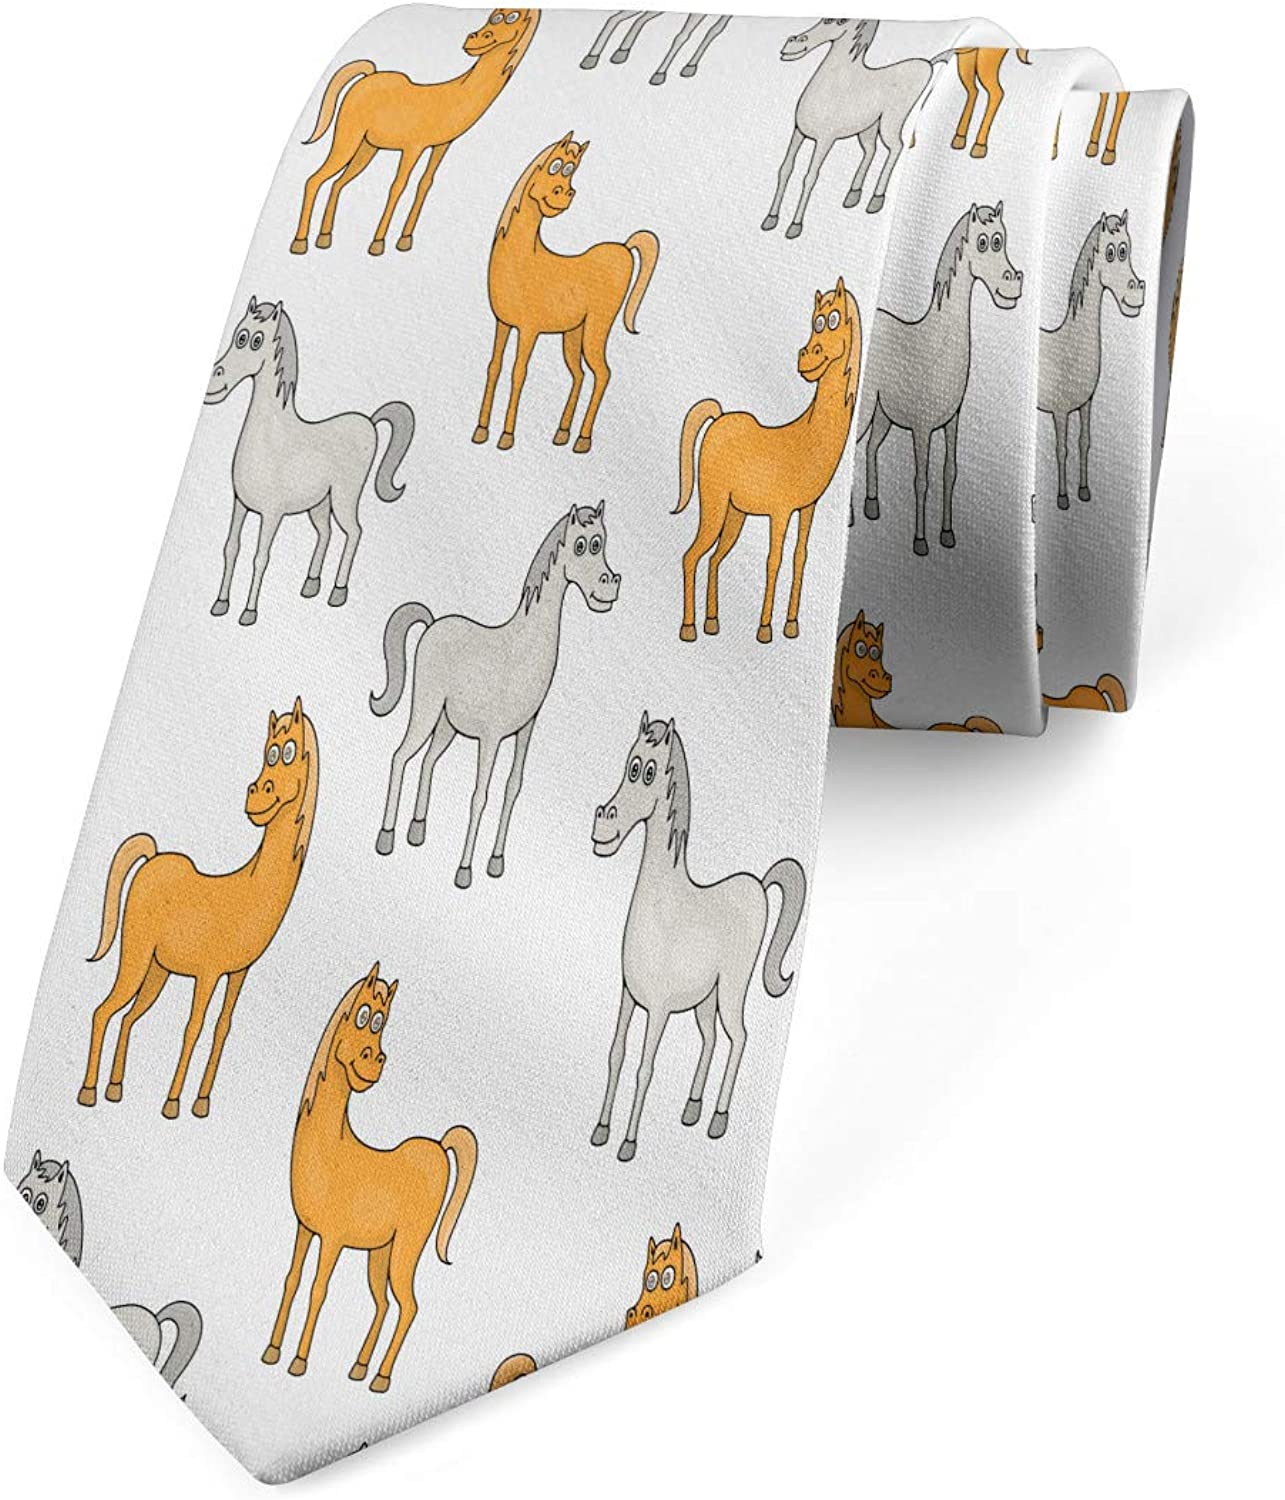 Apricot Pale Grey White 3.7 Country Farm Animals Pattern Lunarable Mens Tie